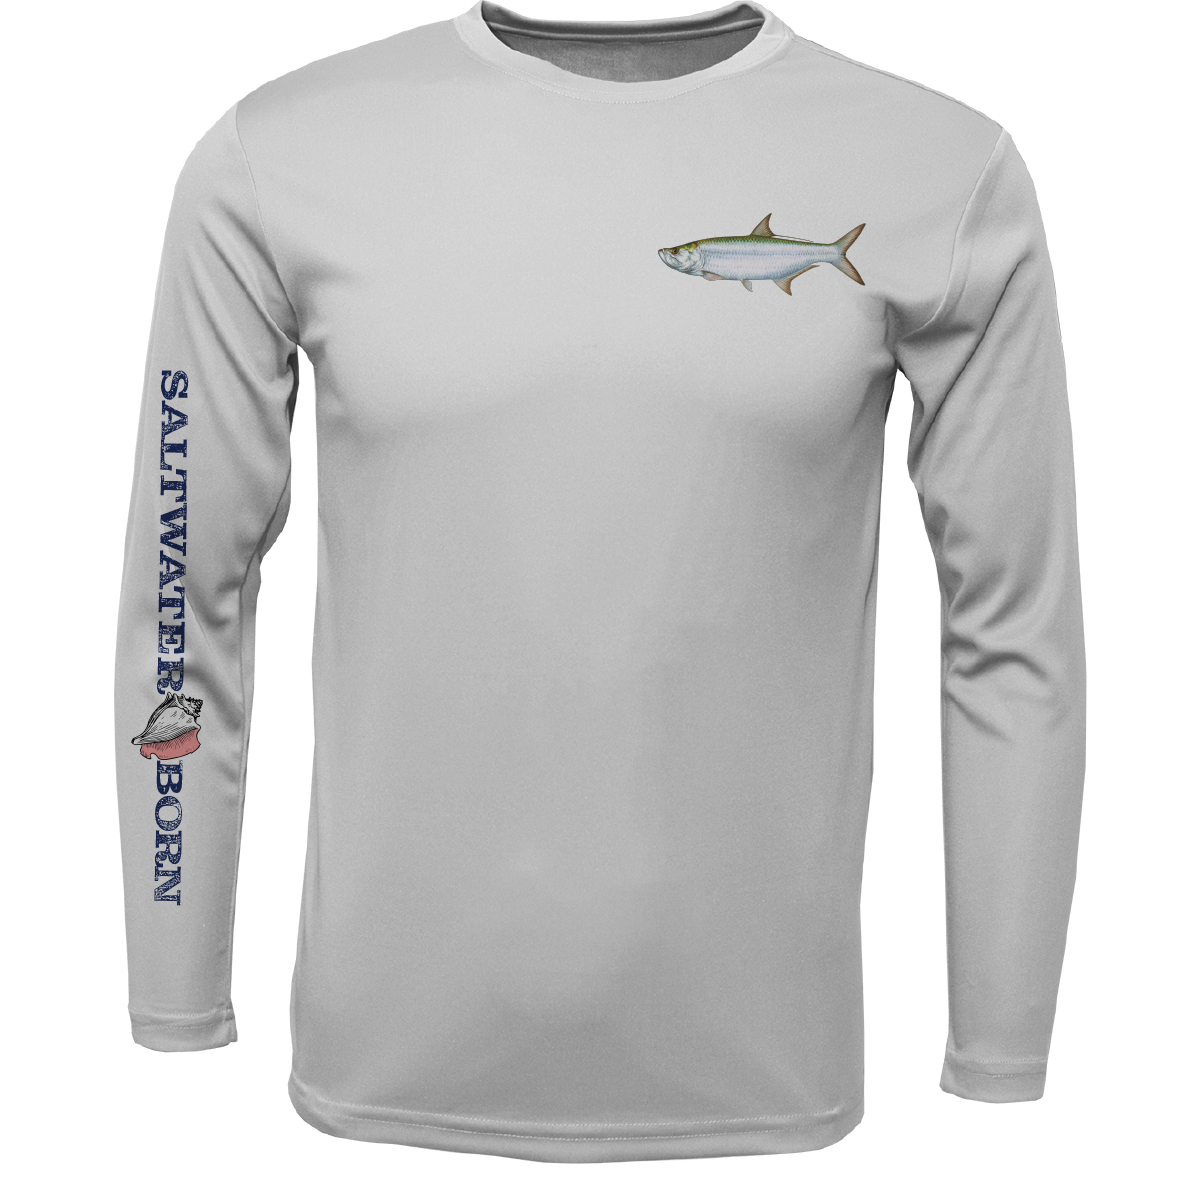 Clean Tarpon Long Sleeve UPF 50+ Dry-Fit Shirt